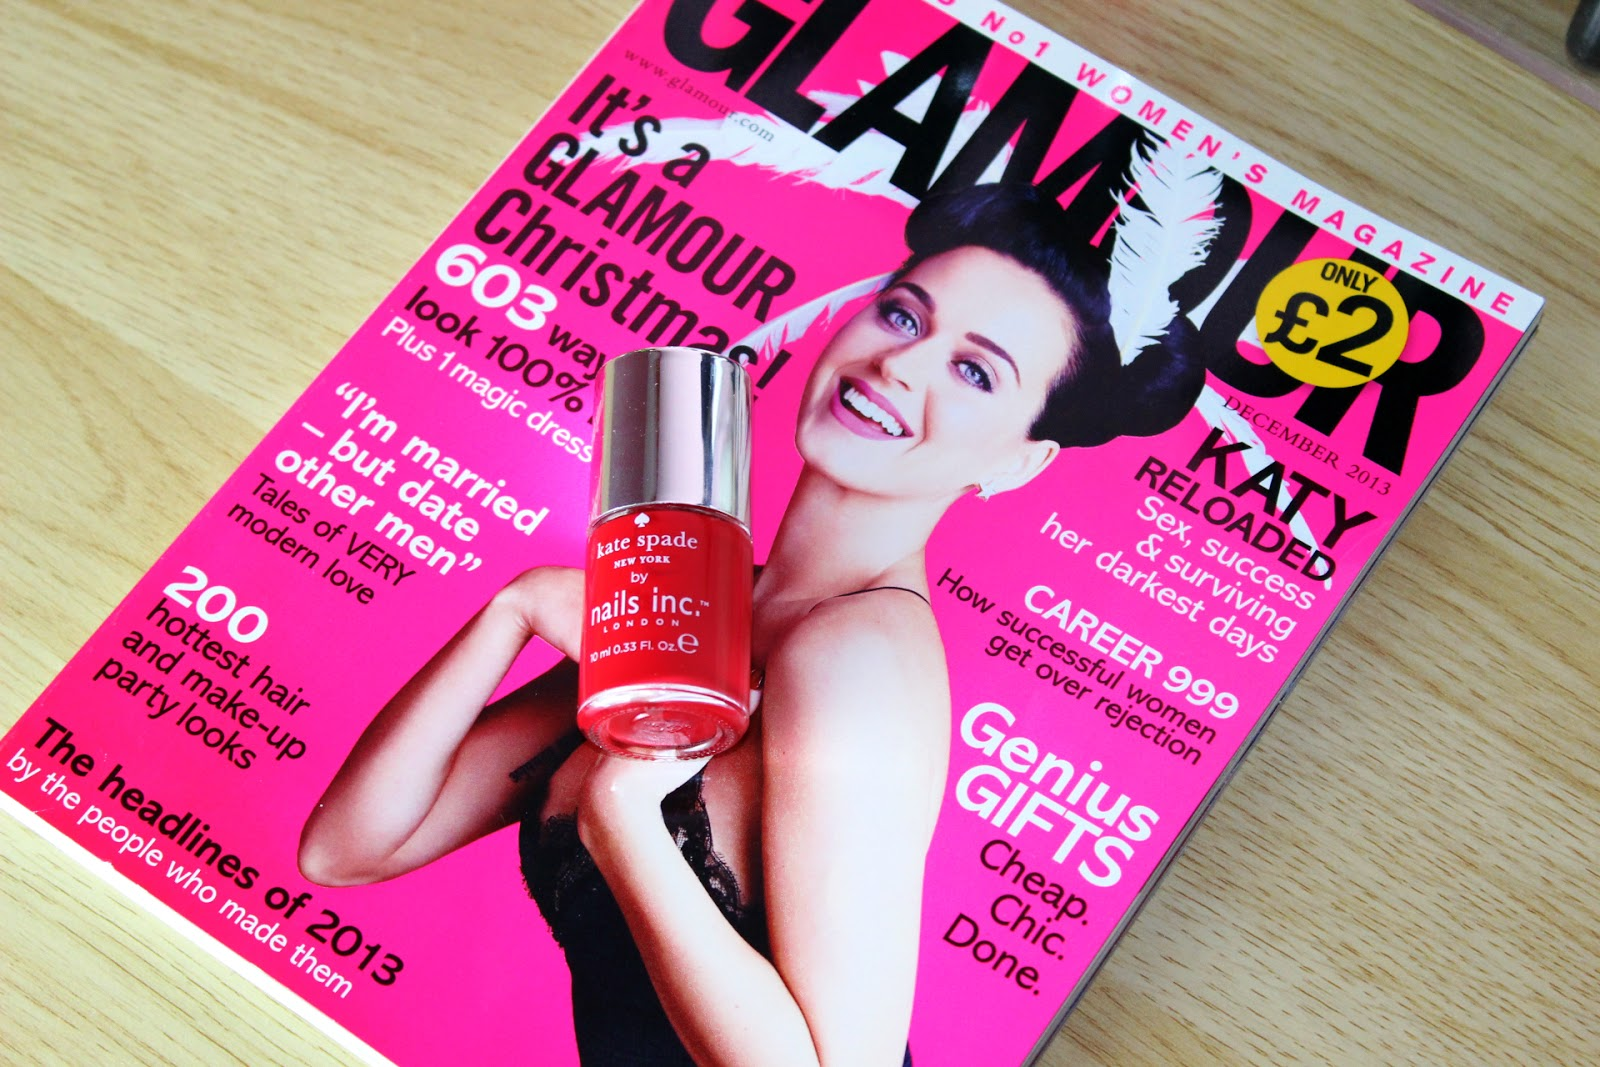 Glamour Magazine November Nails Inc Freebie